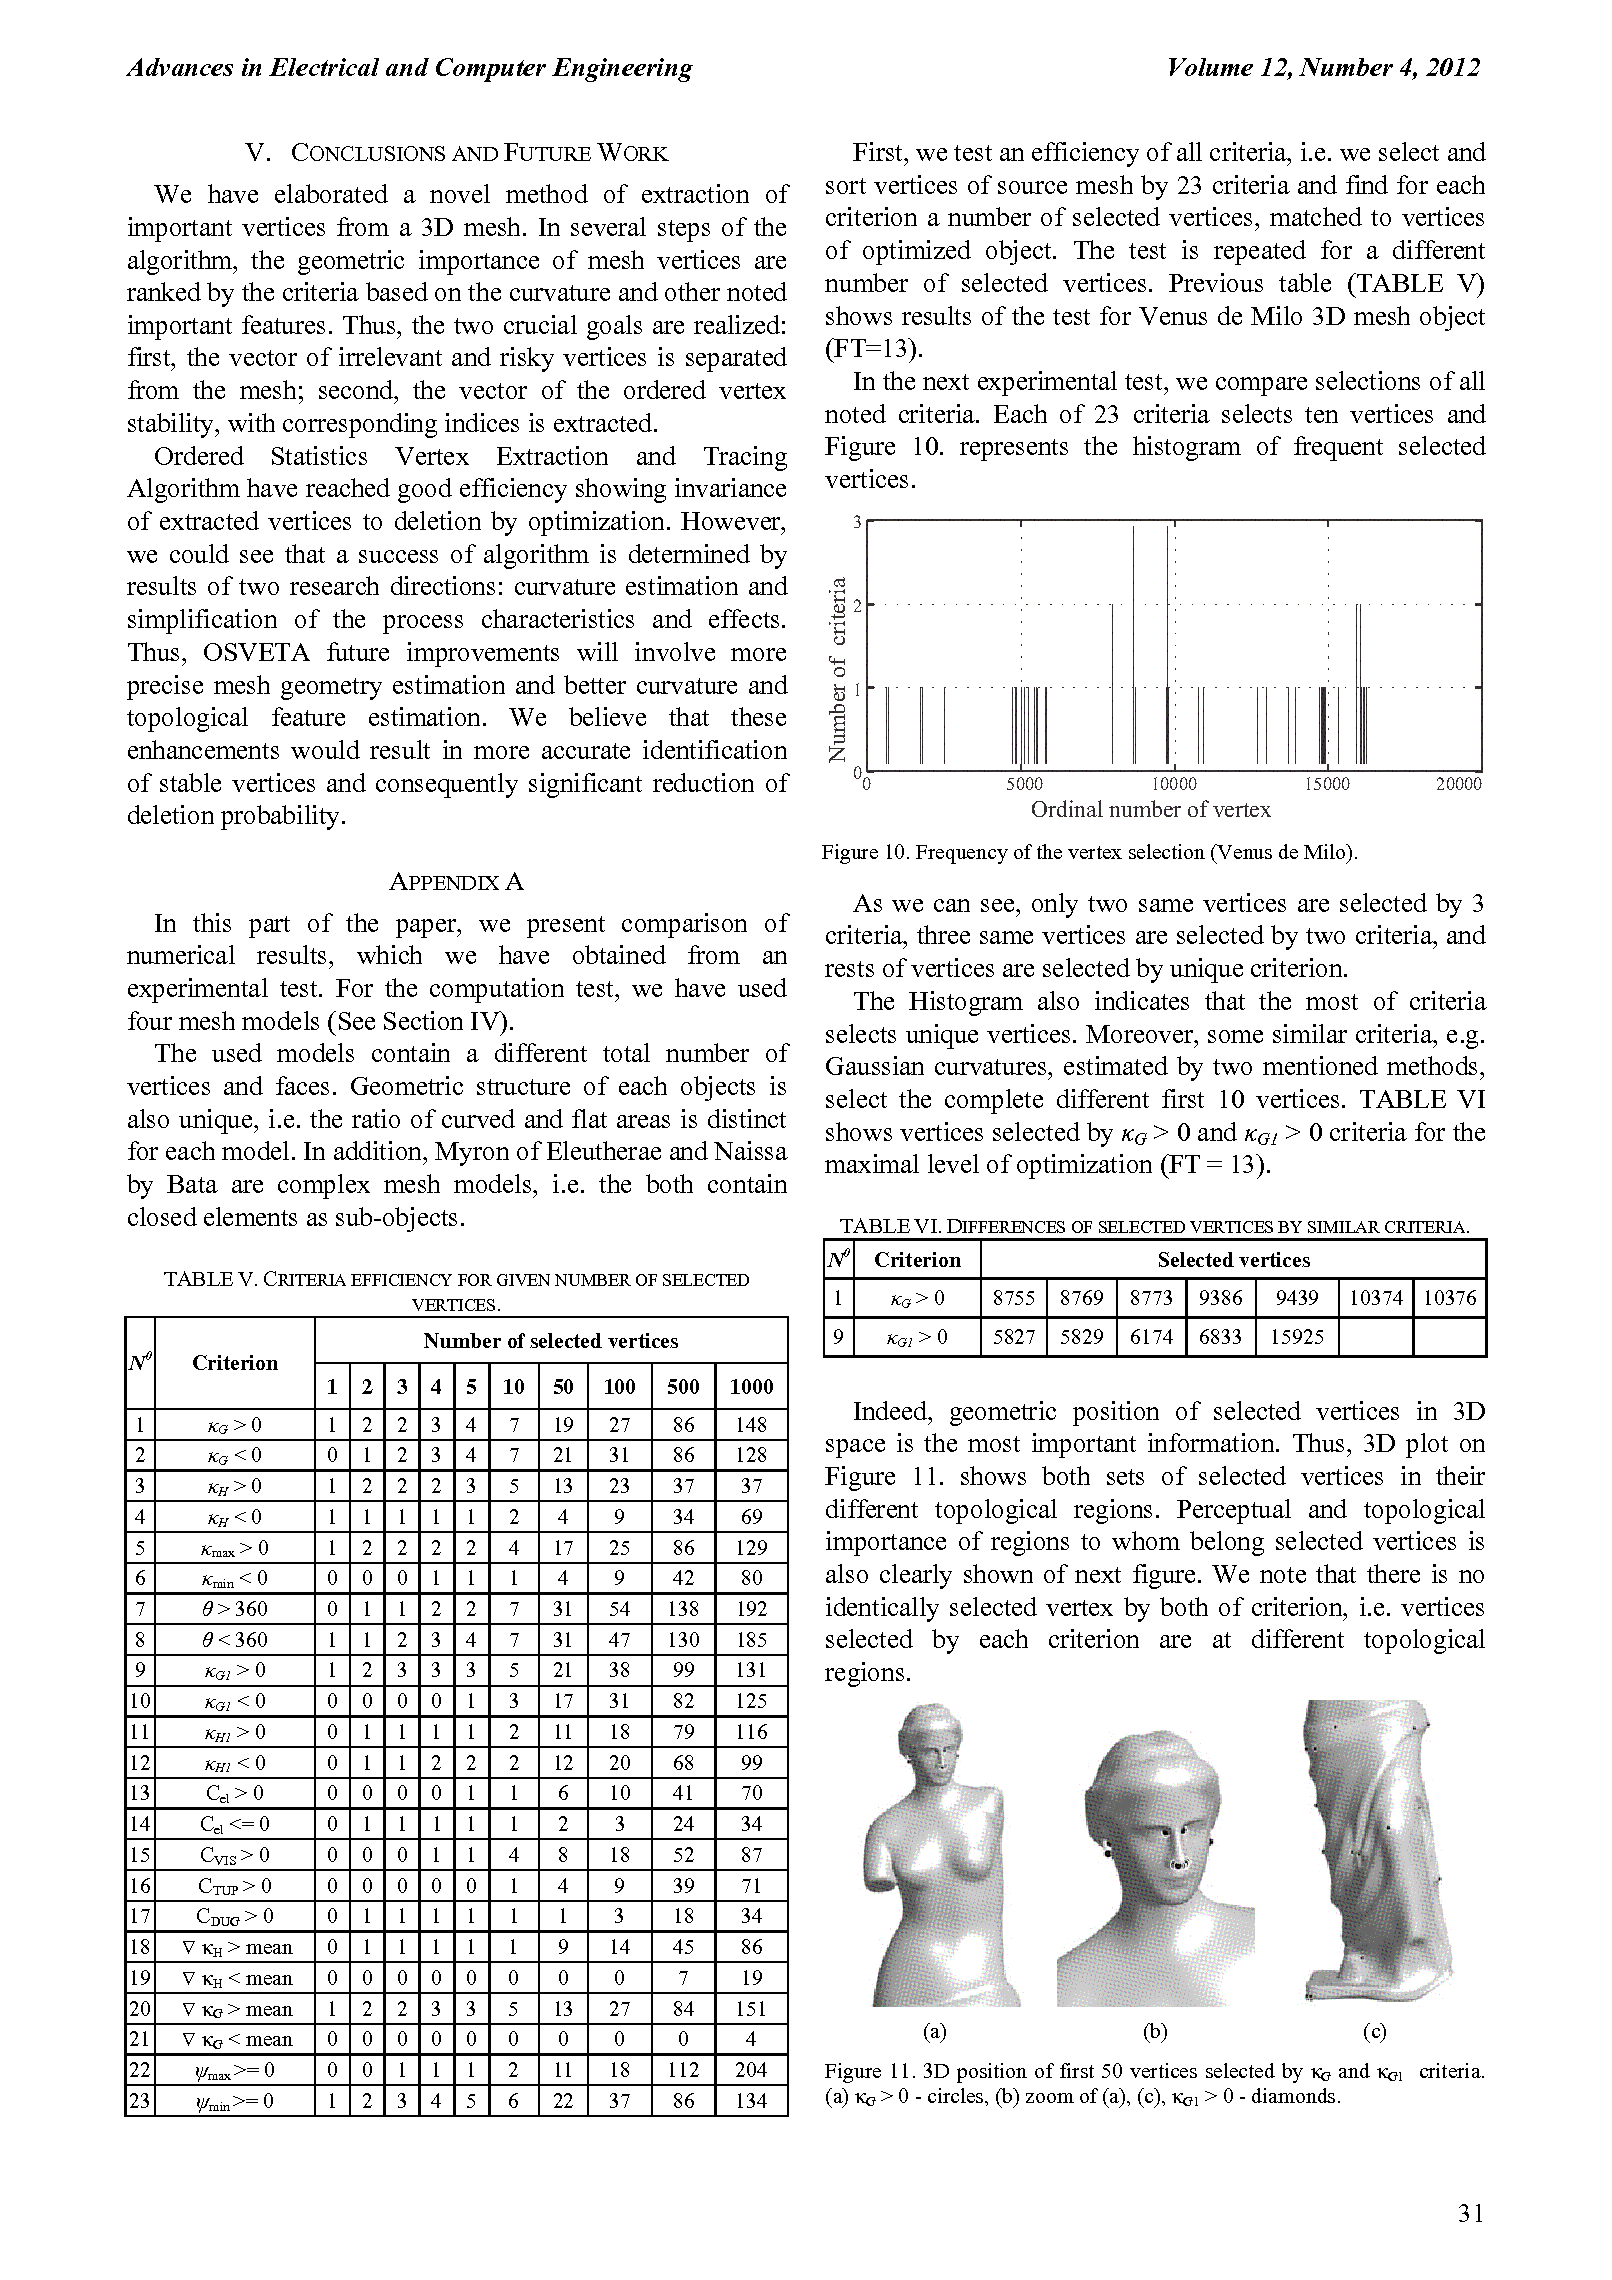 PDF Quickview for paper with DOI:10.4316/AECE.2012.04004